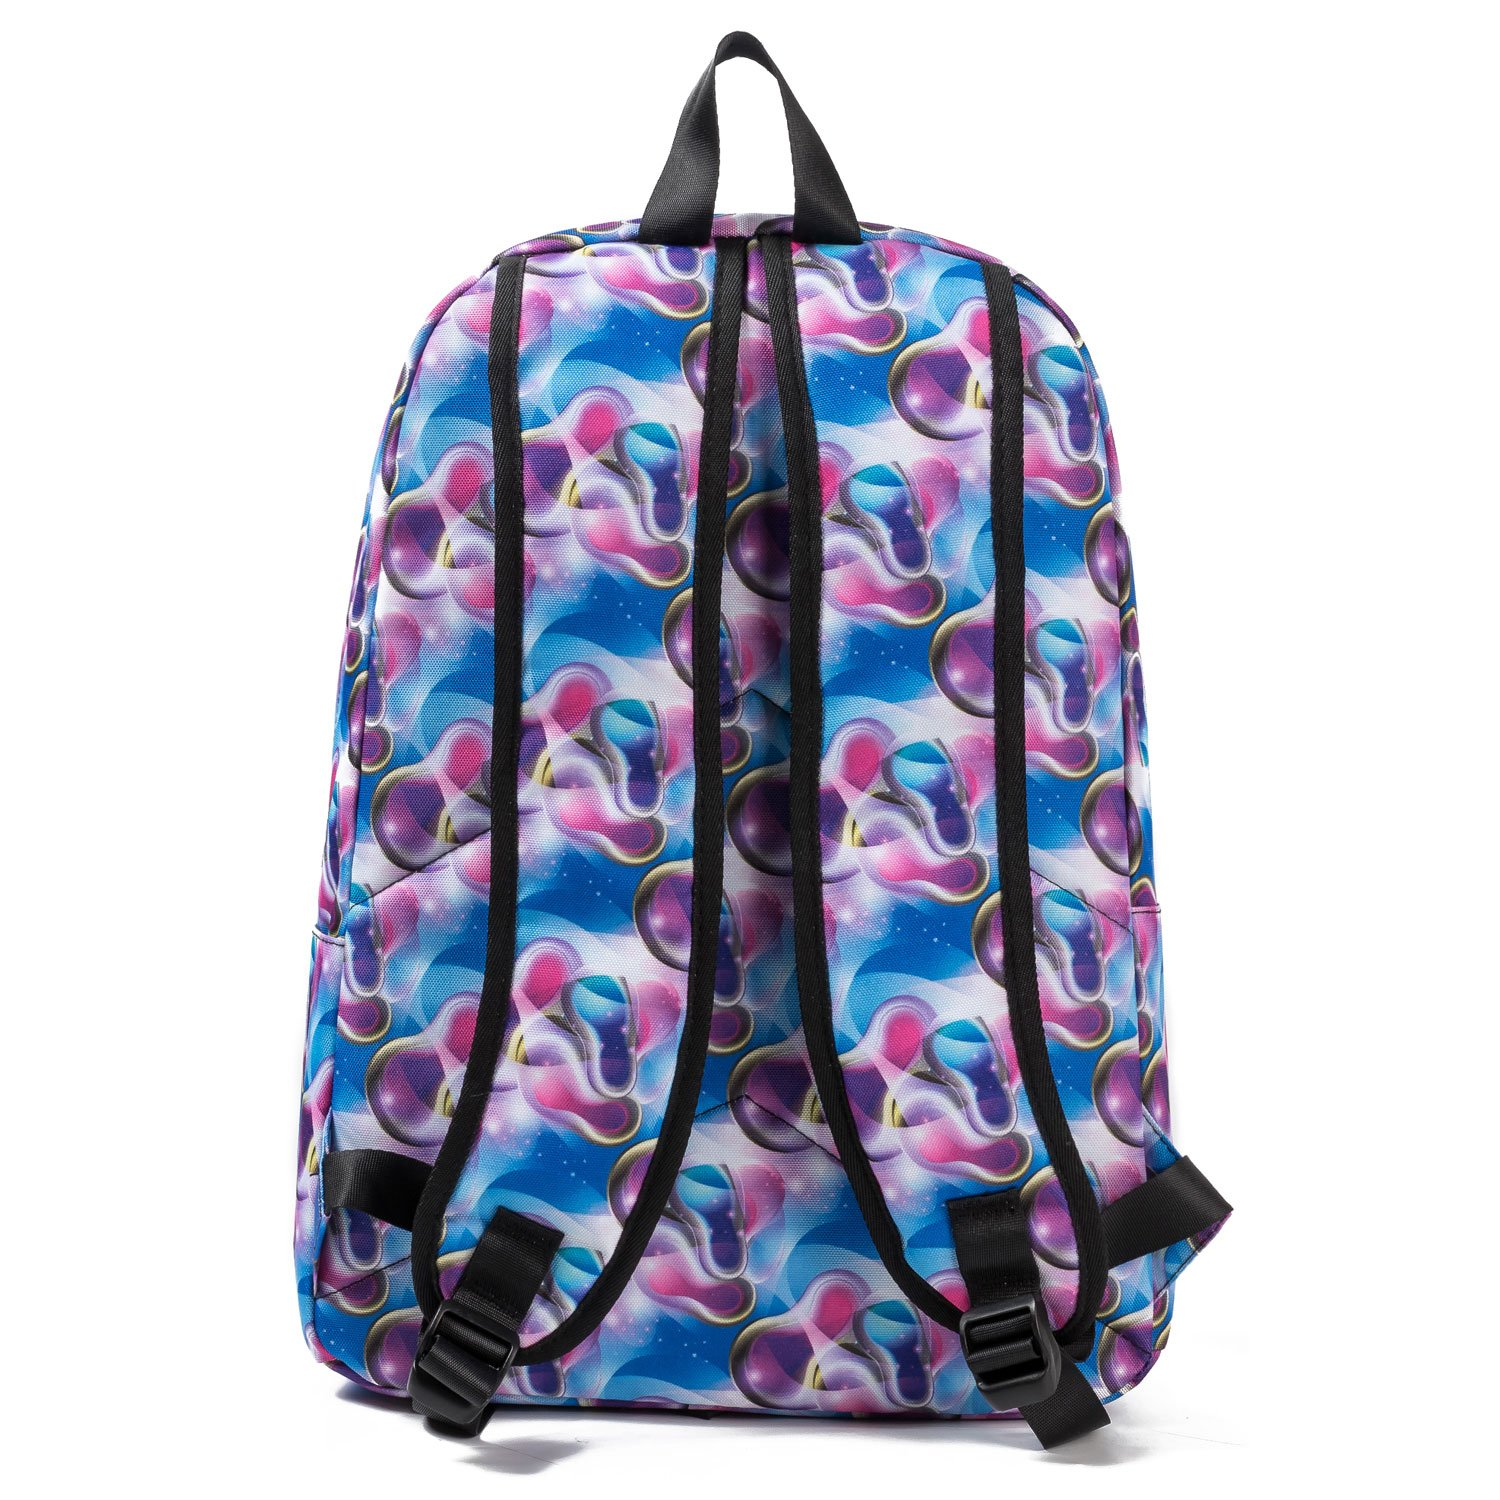 Amazon.com: Colorful Printing Backpack For Women School Bags For Teenagers Women Backpack Canvas Rucksack Mochila Escolar Feminina: Clothing